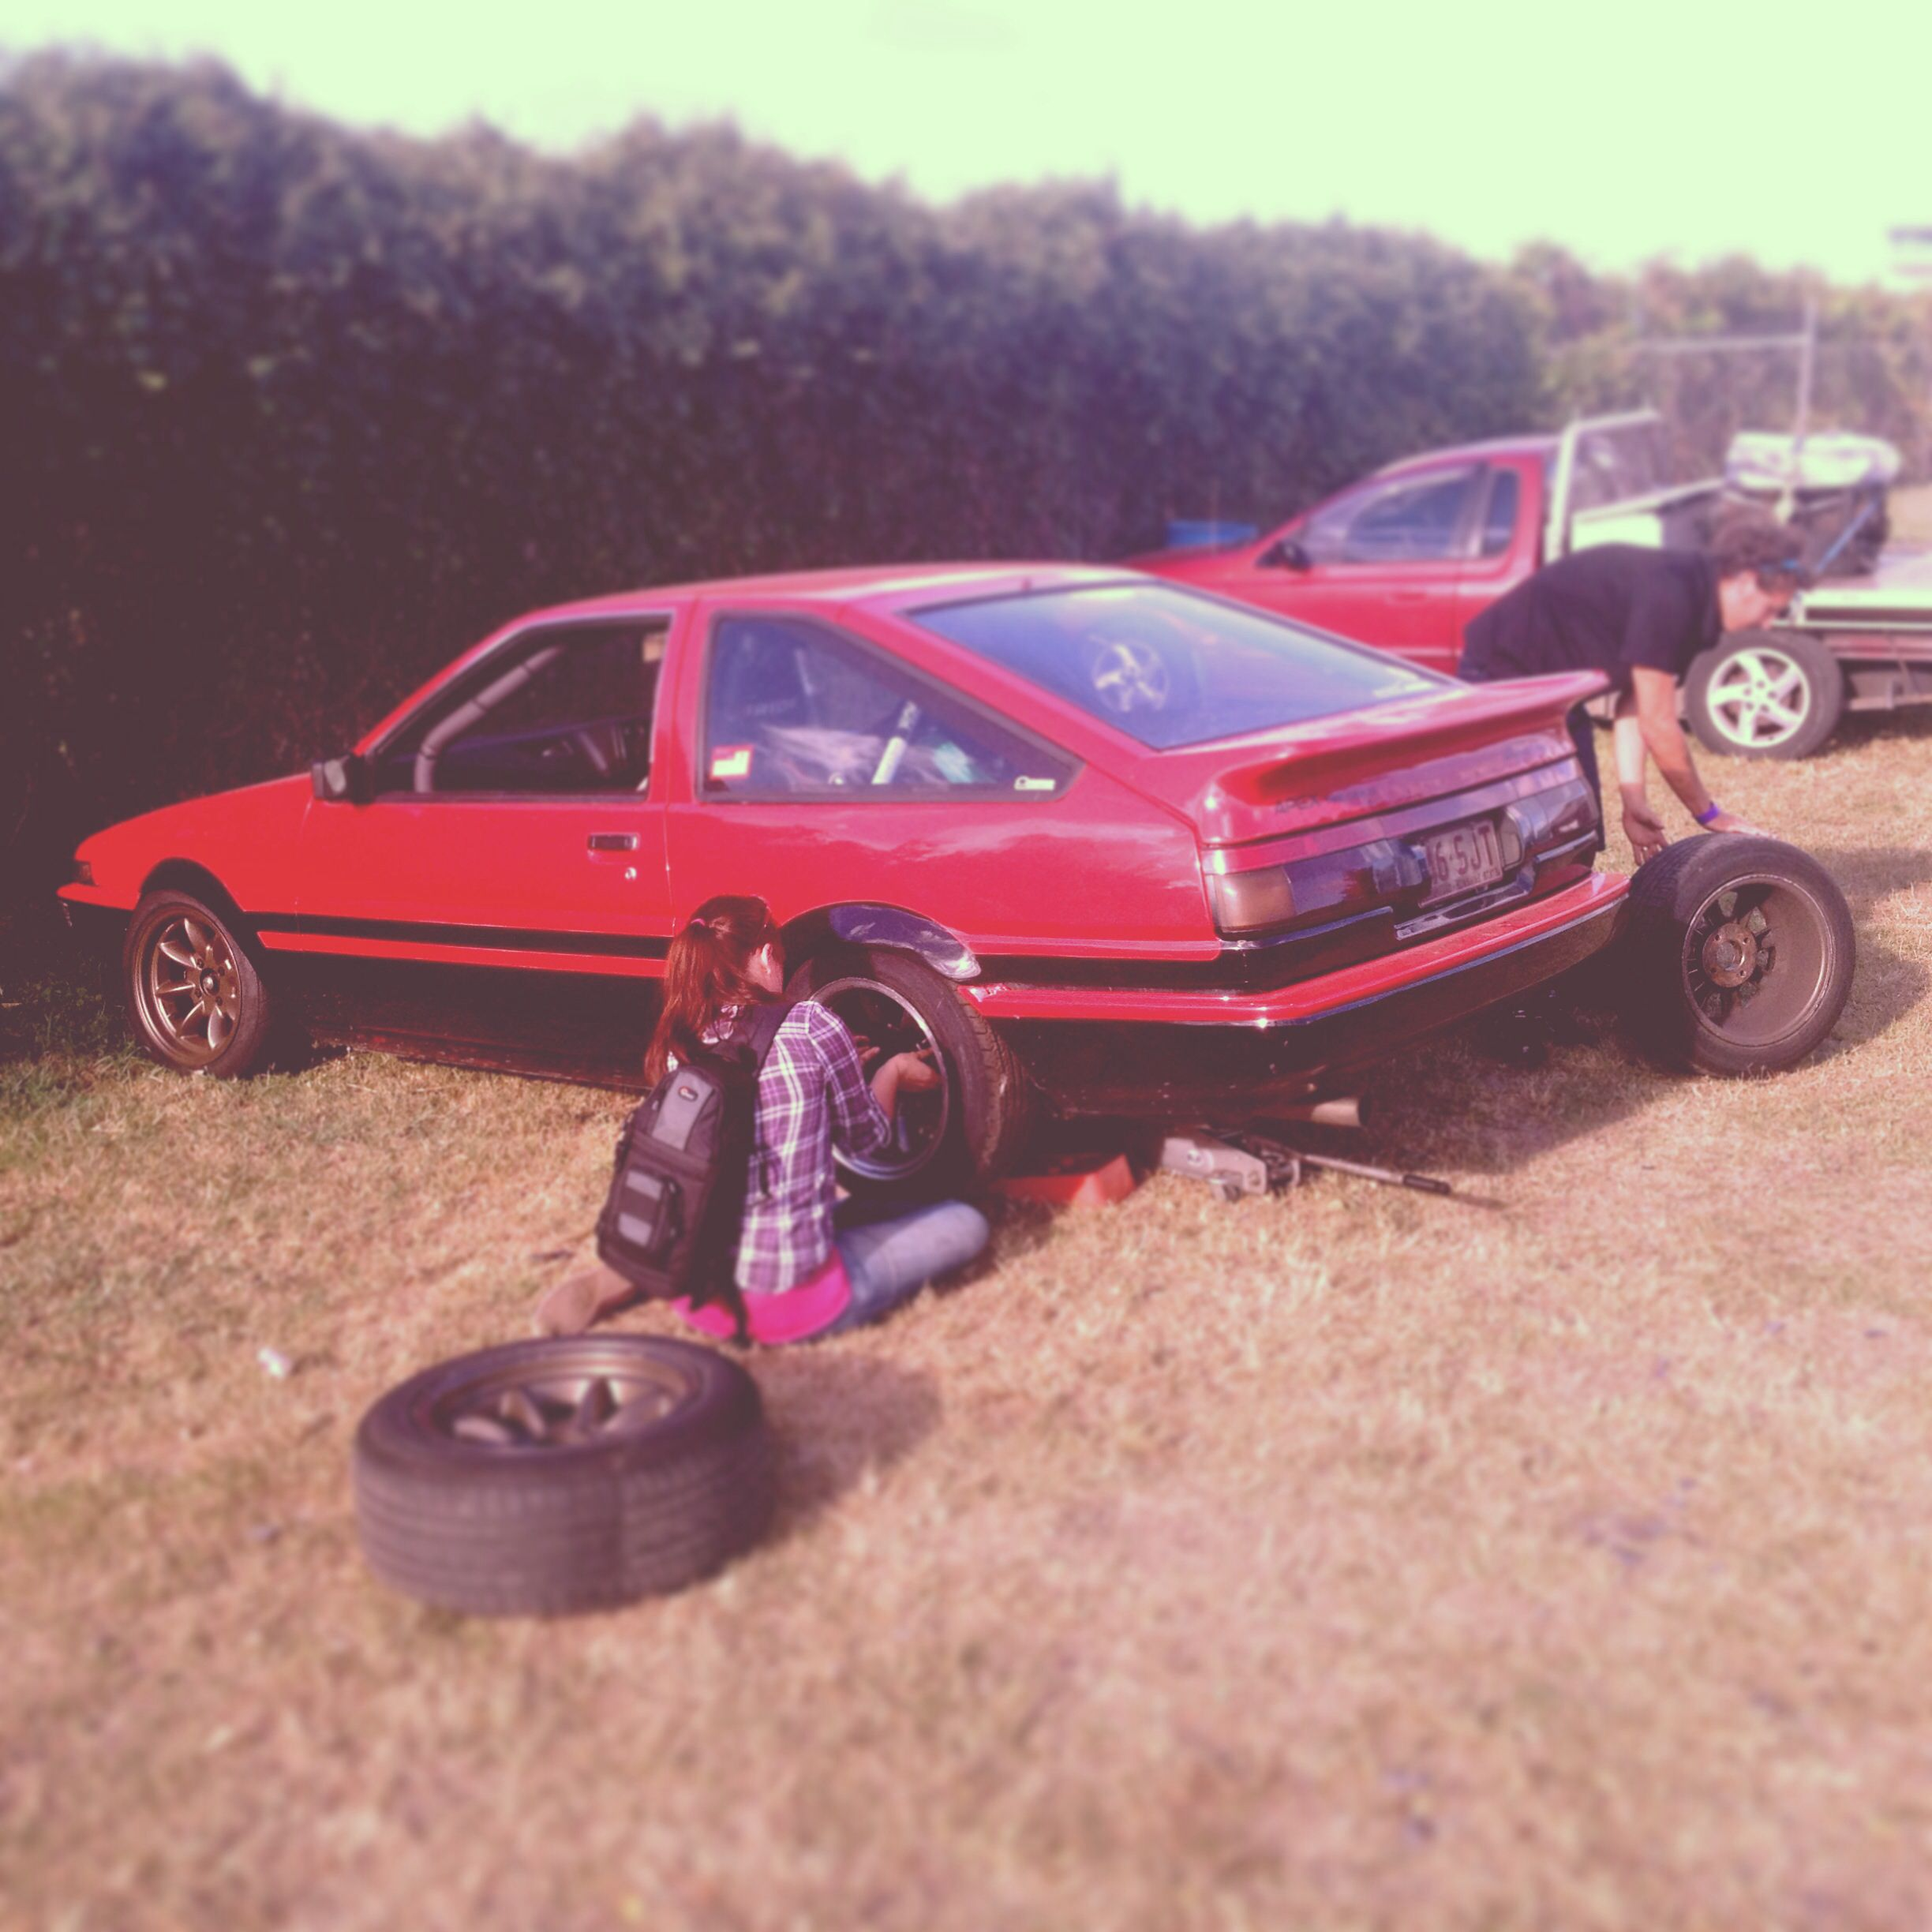 80s car toys  Slammed AE getting dressed for a track day  Awesome  Pinterest